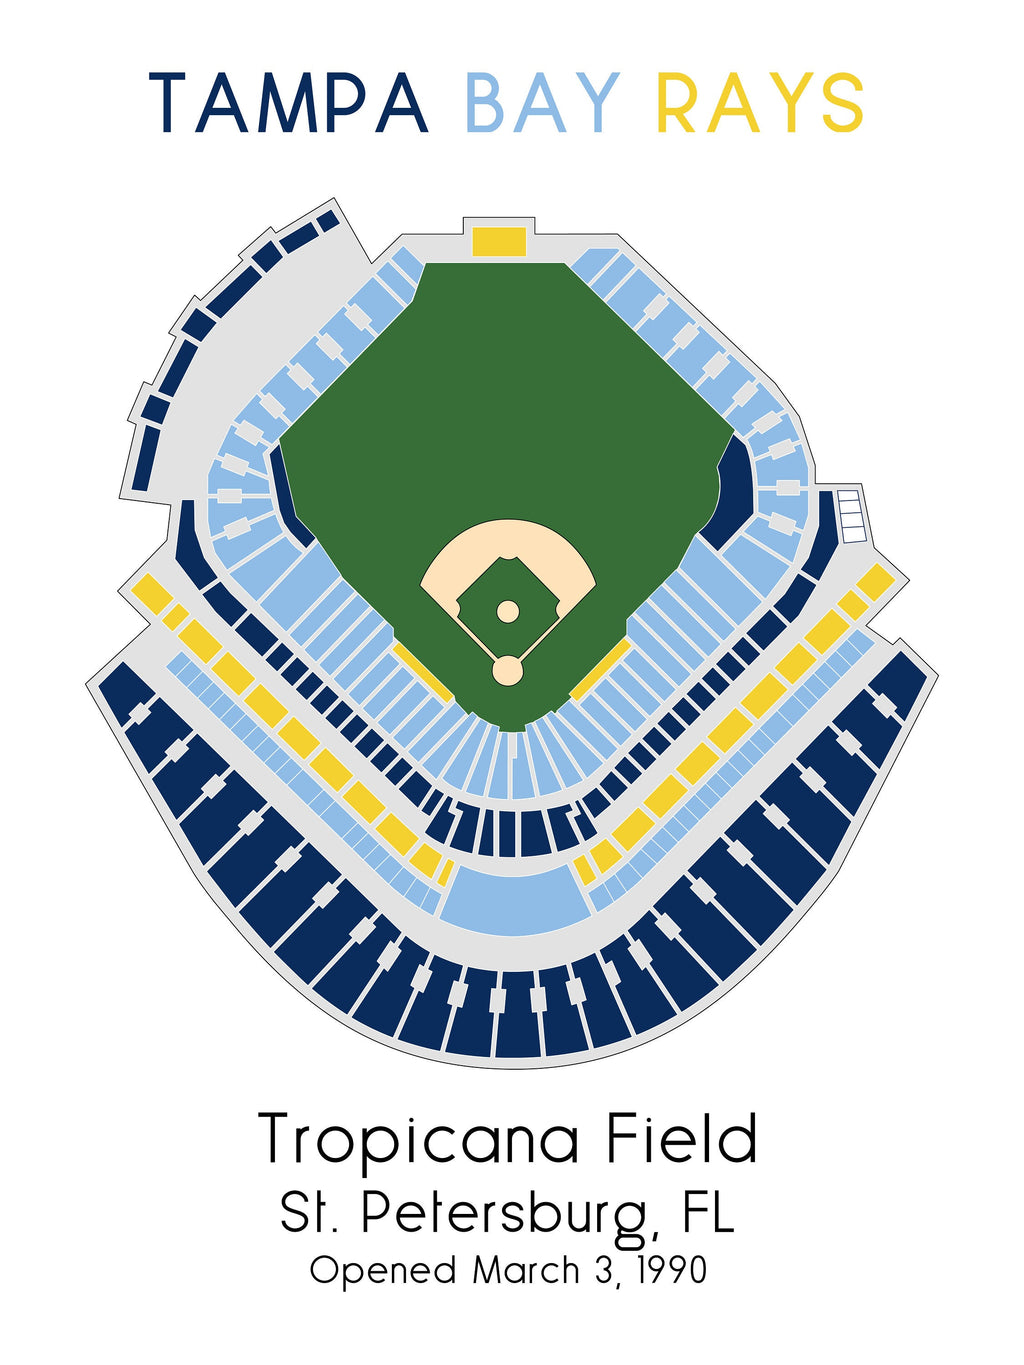 Tampa Bay Rays Tropicana Field, MLB Stadium Map